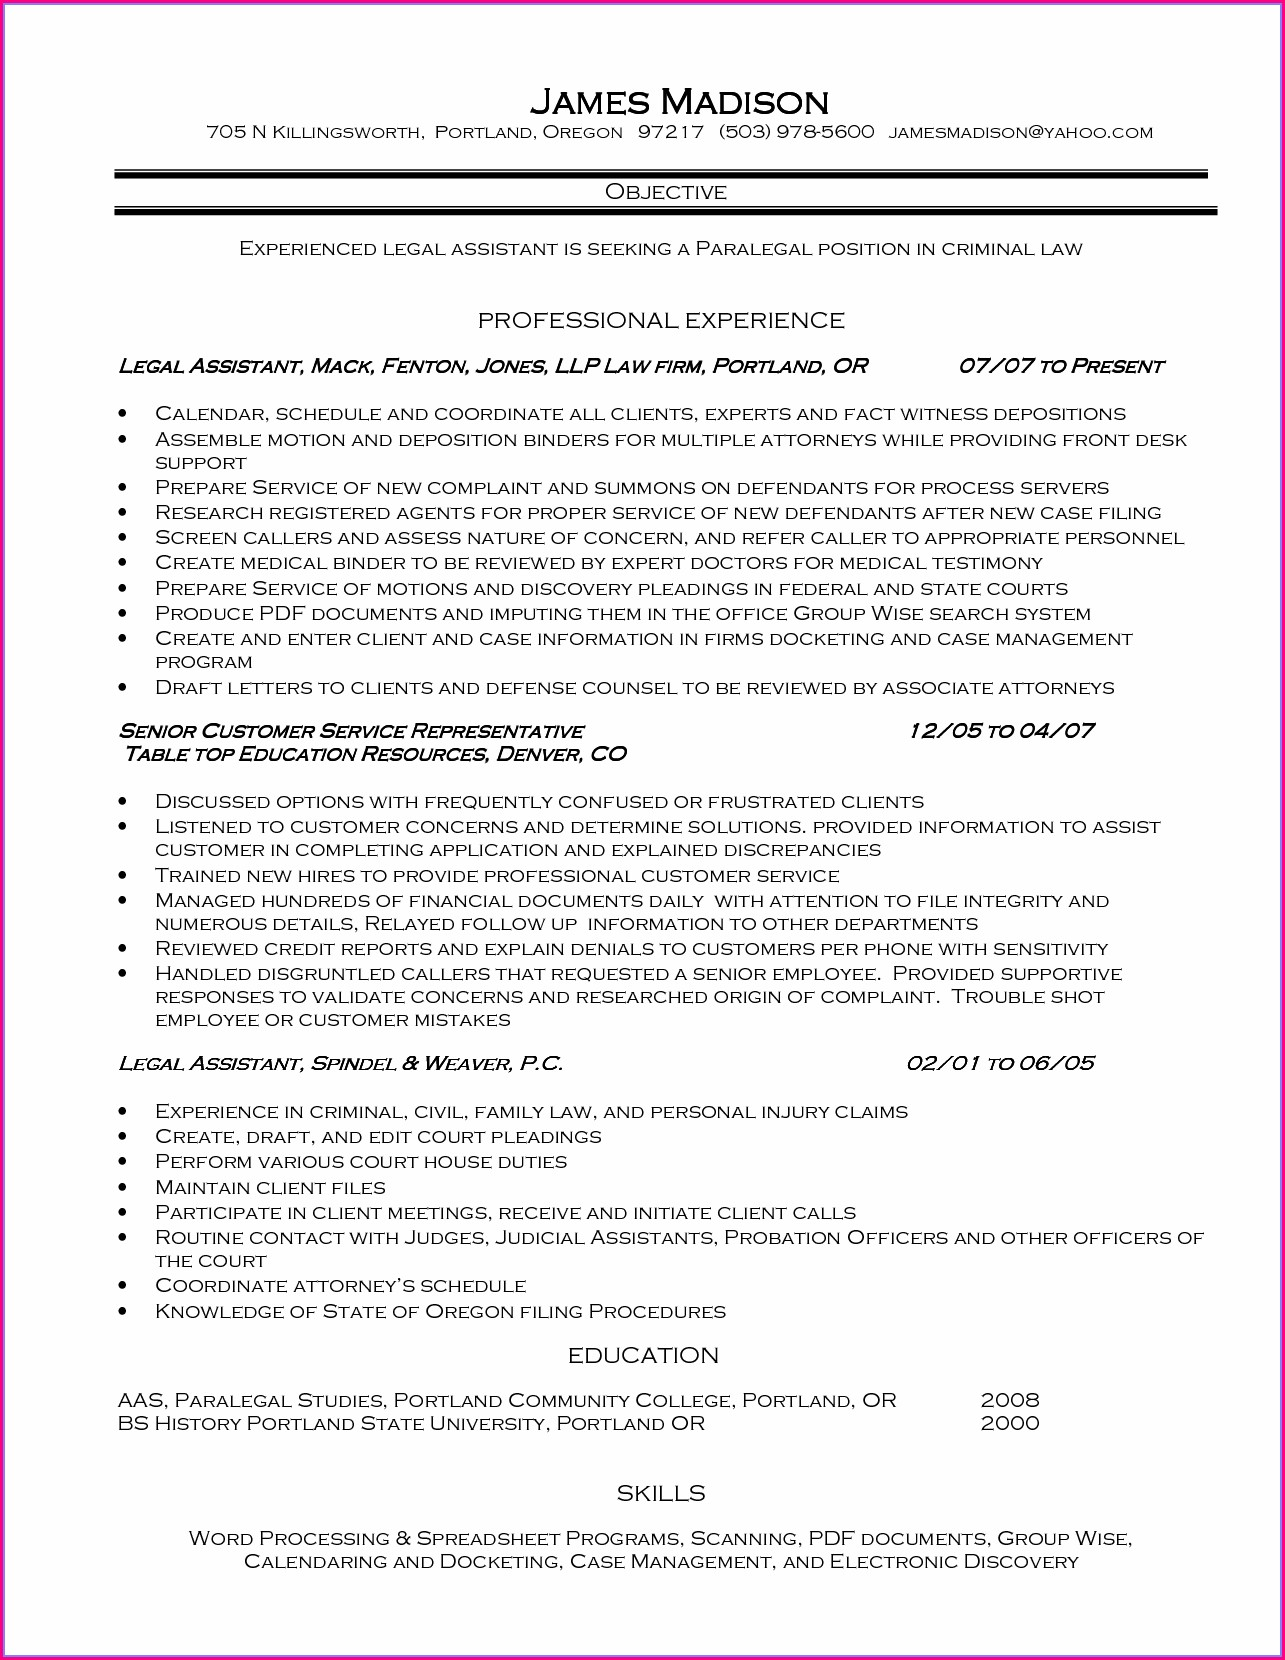 Personal Injury Legal Assistant Duties For Resume